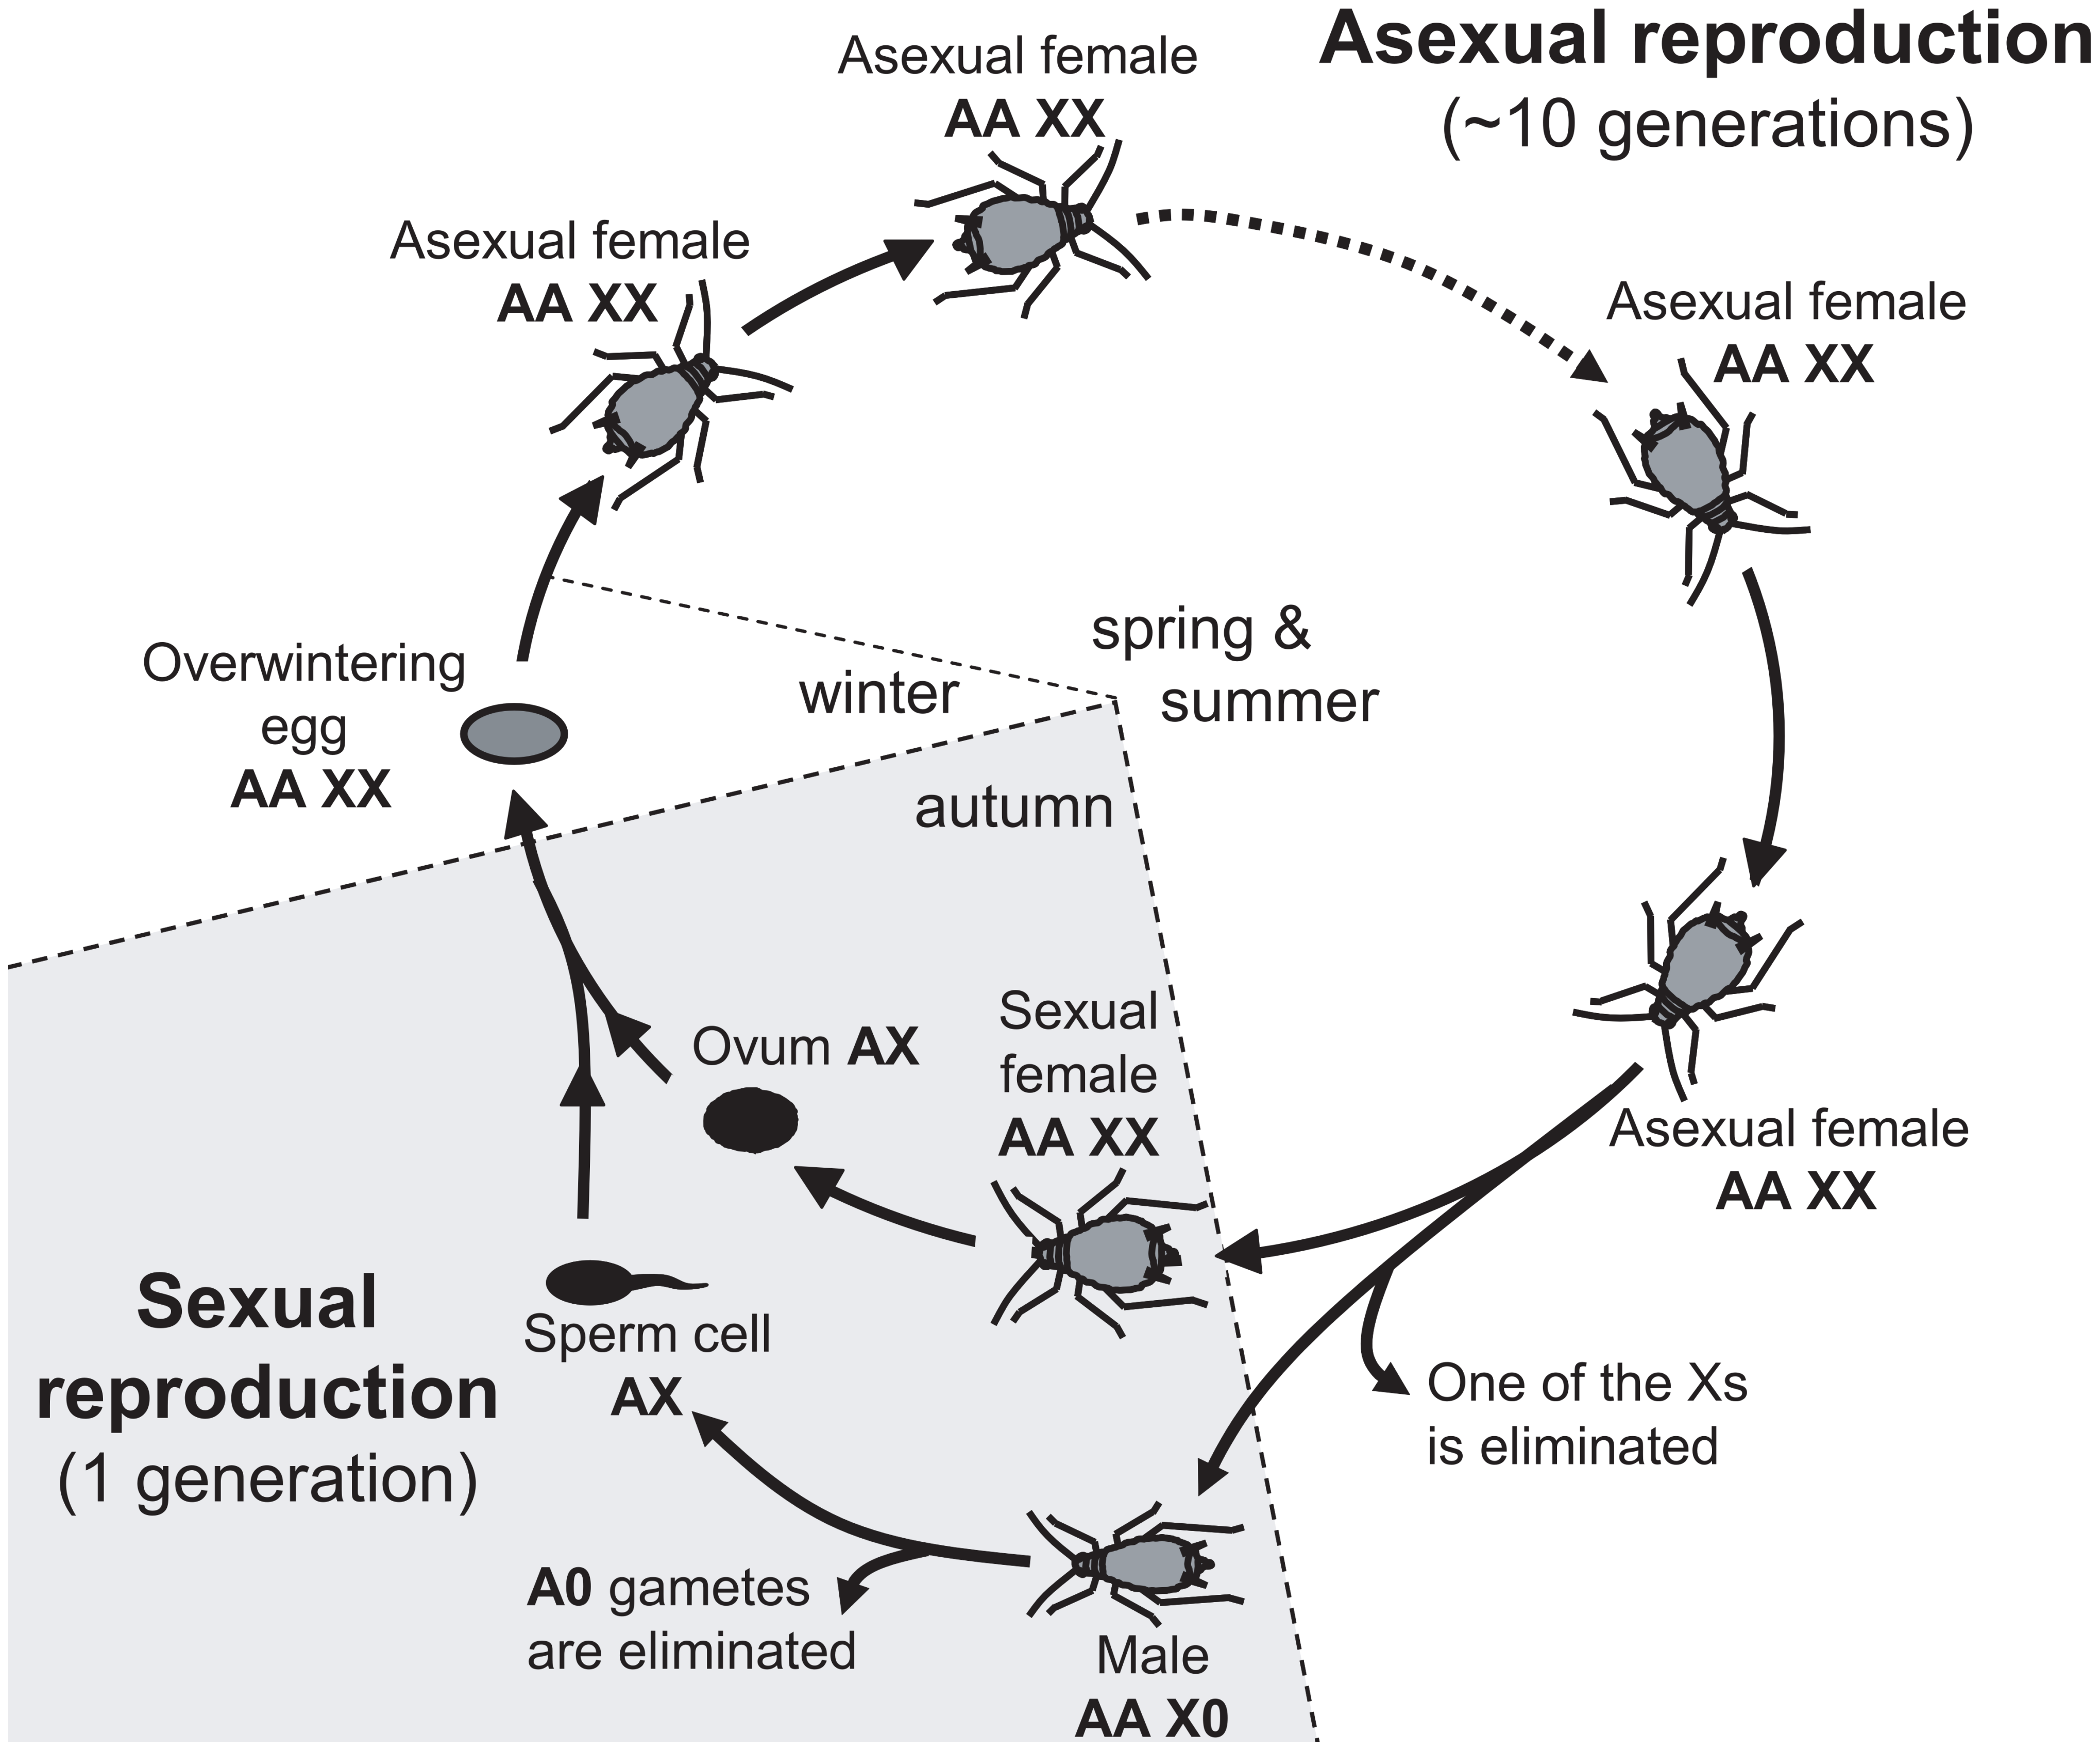 Annual life-cycle of the pea aphid and ploidy levels for autosomes (A) and sex-chromosome (X).